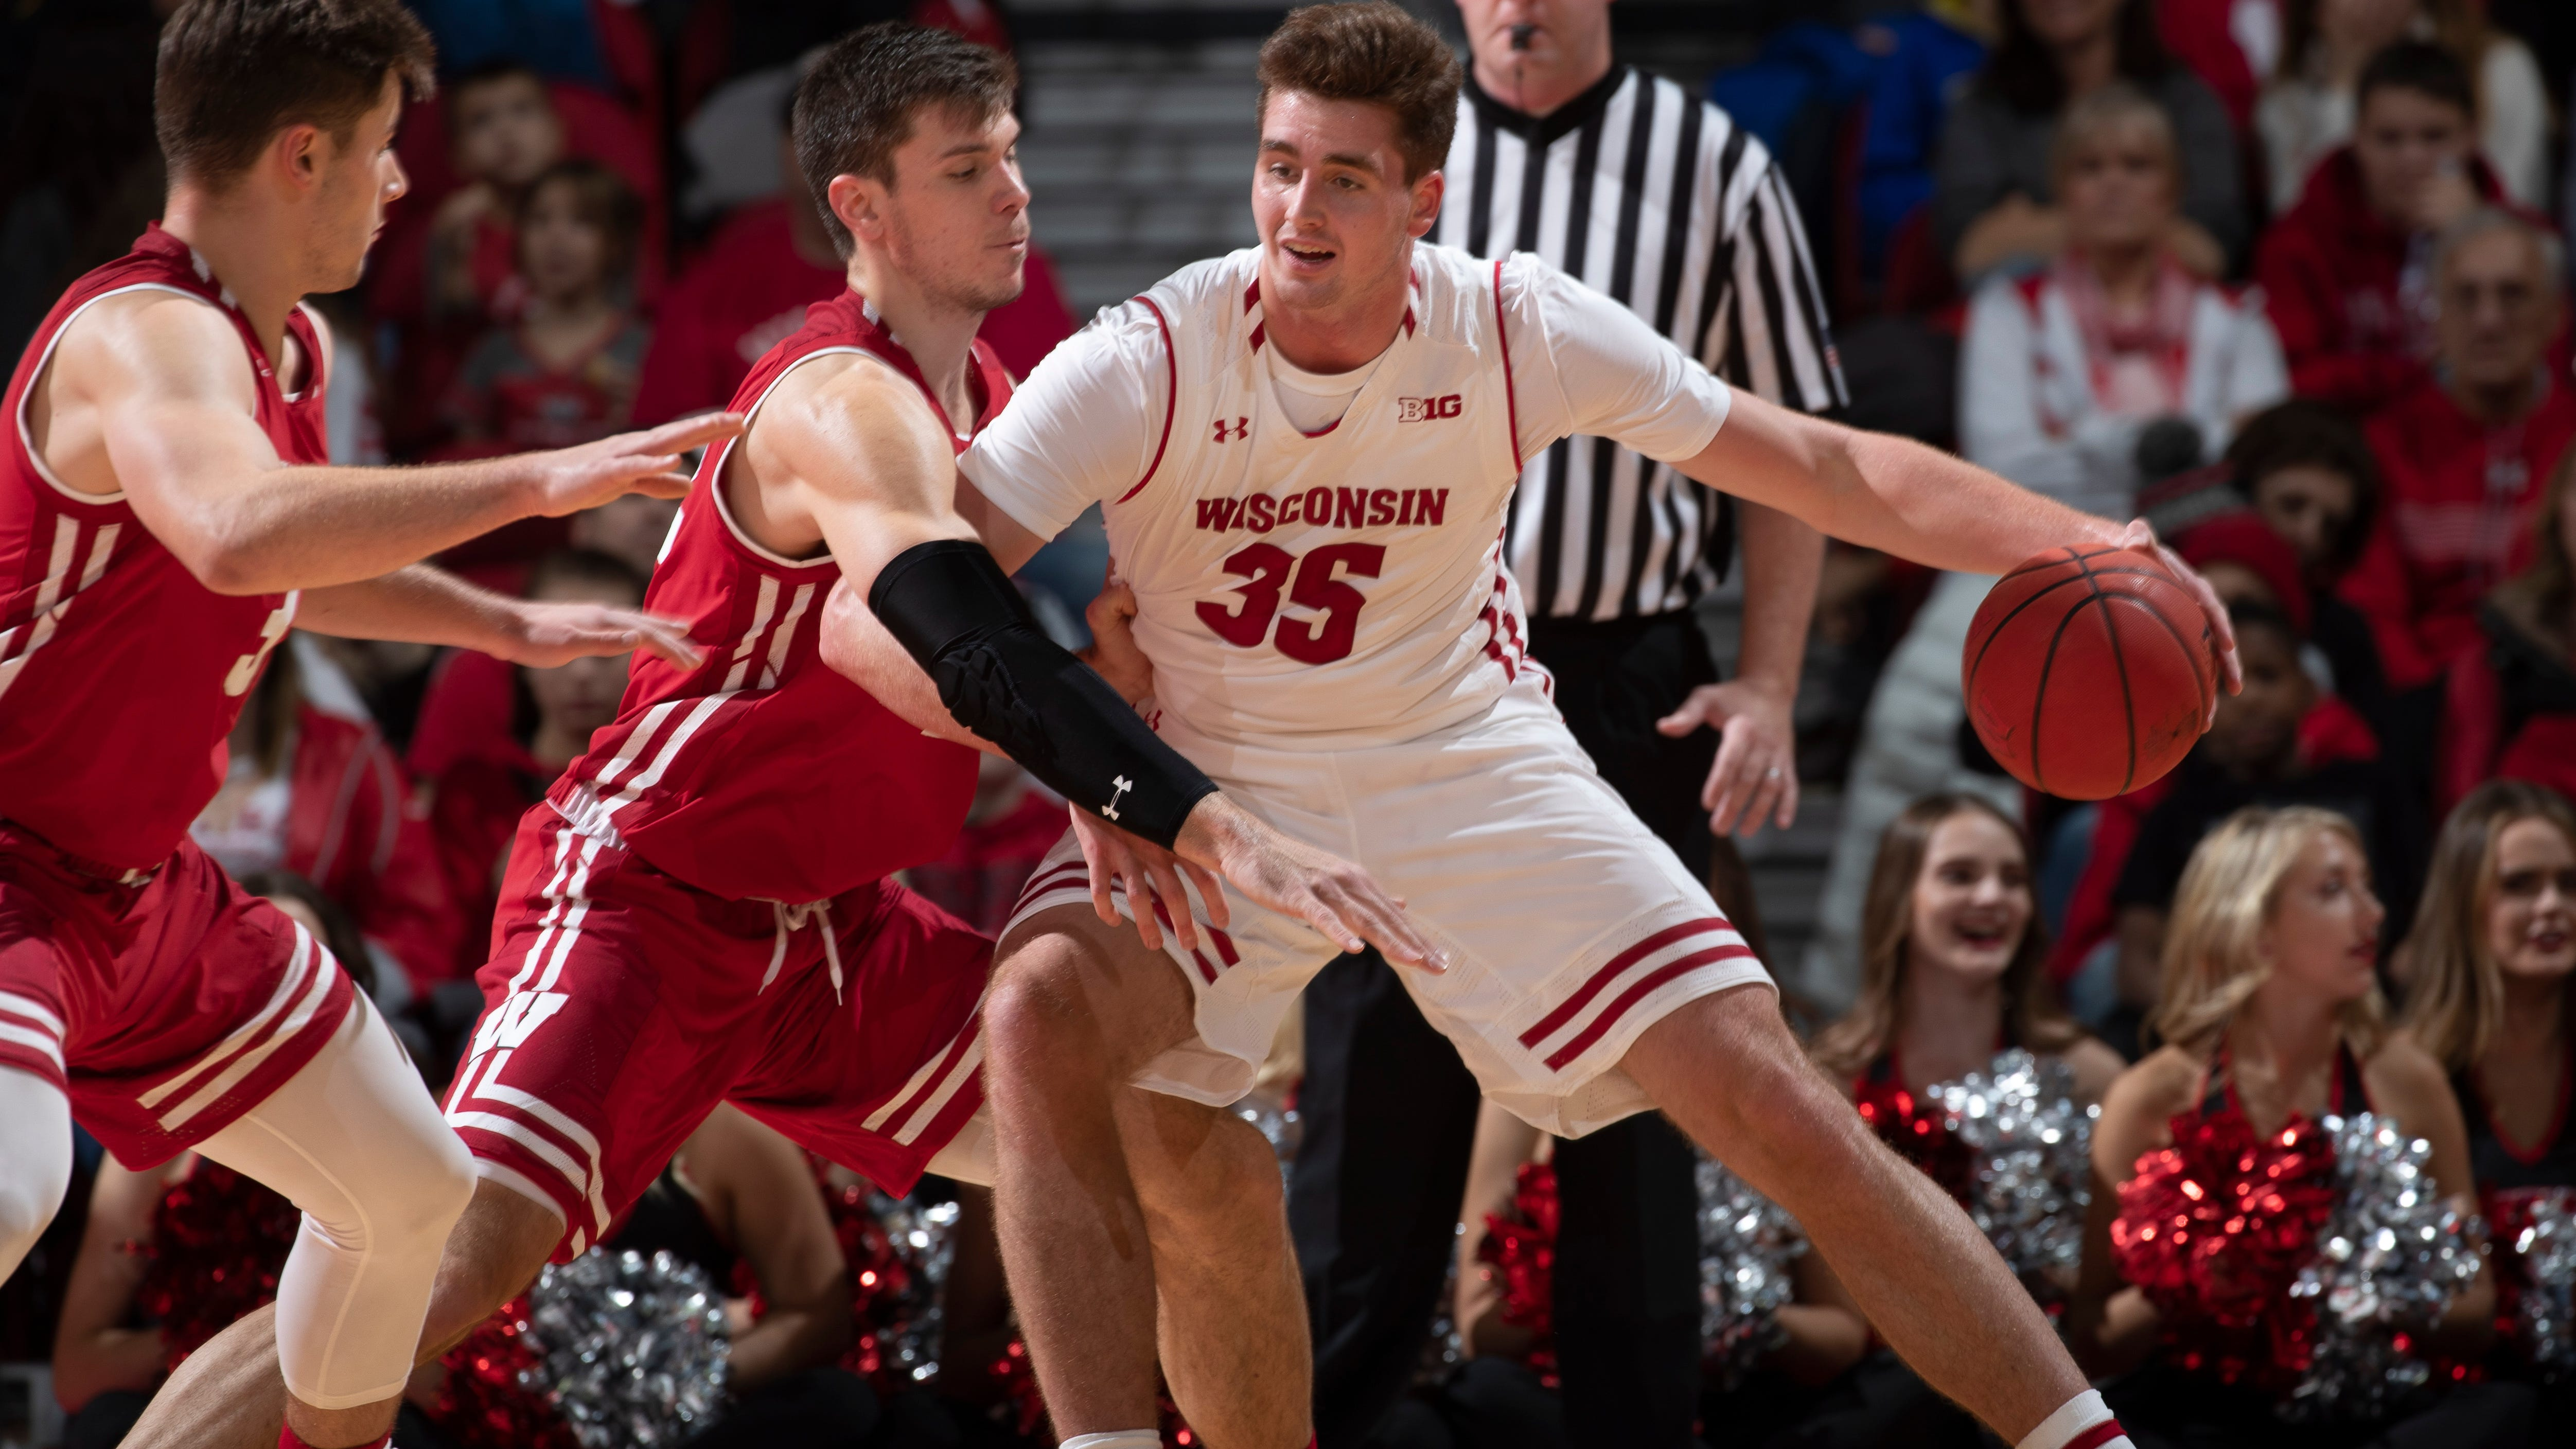 How the Badgers' Nate Reuvers bulked up to go to battle in the Big Ten